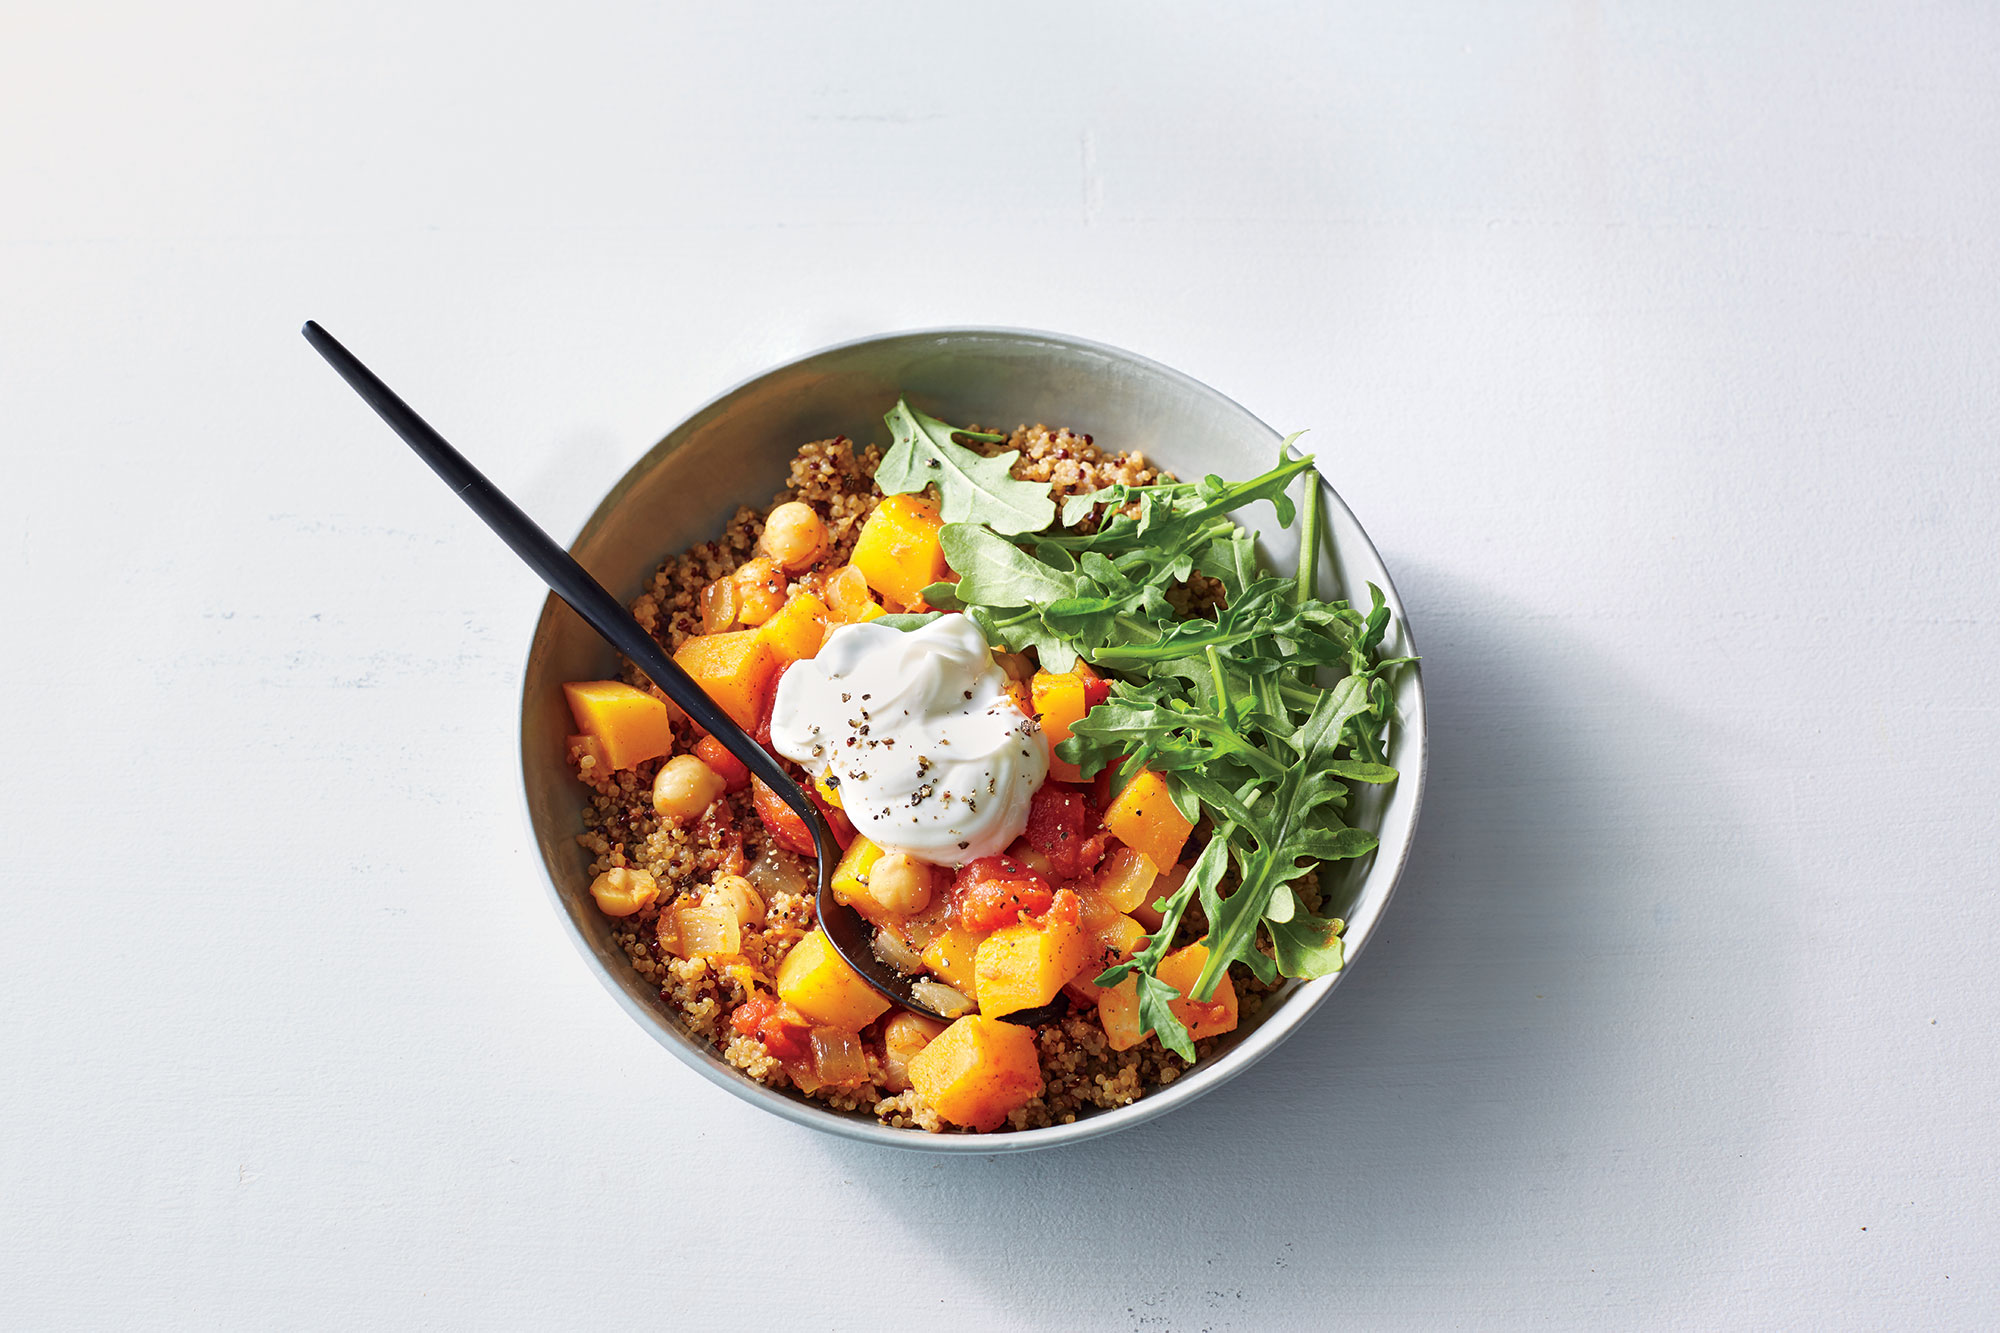 ck- Moroccan Butternut Squash and Chickpea Stew